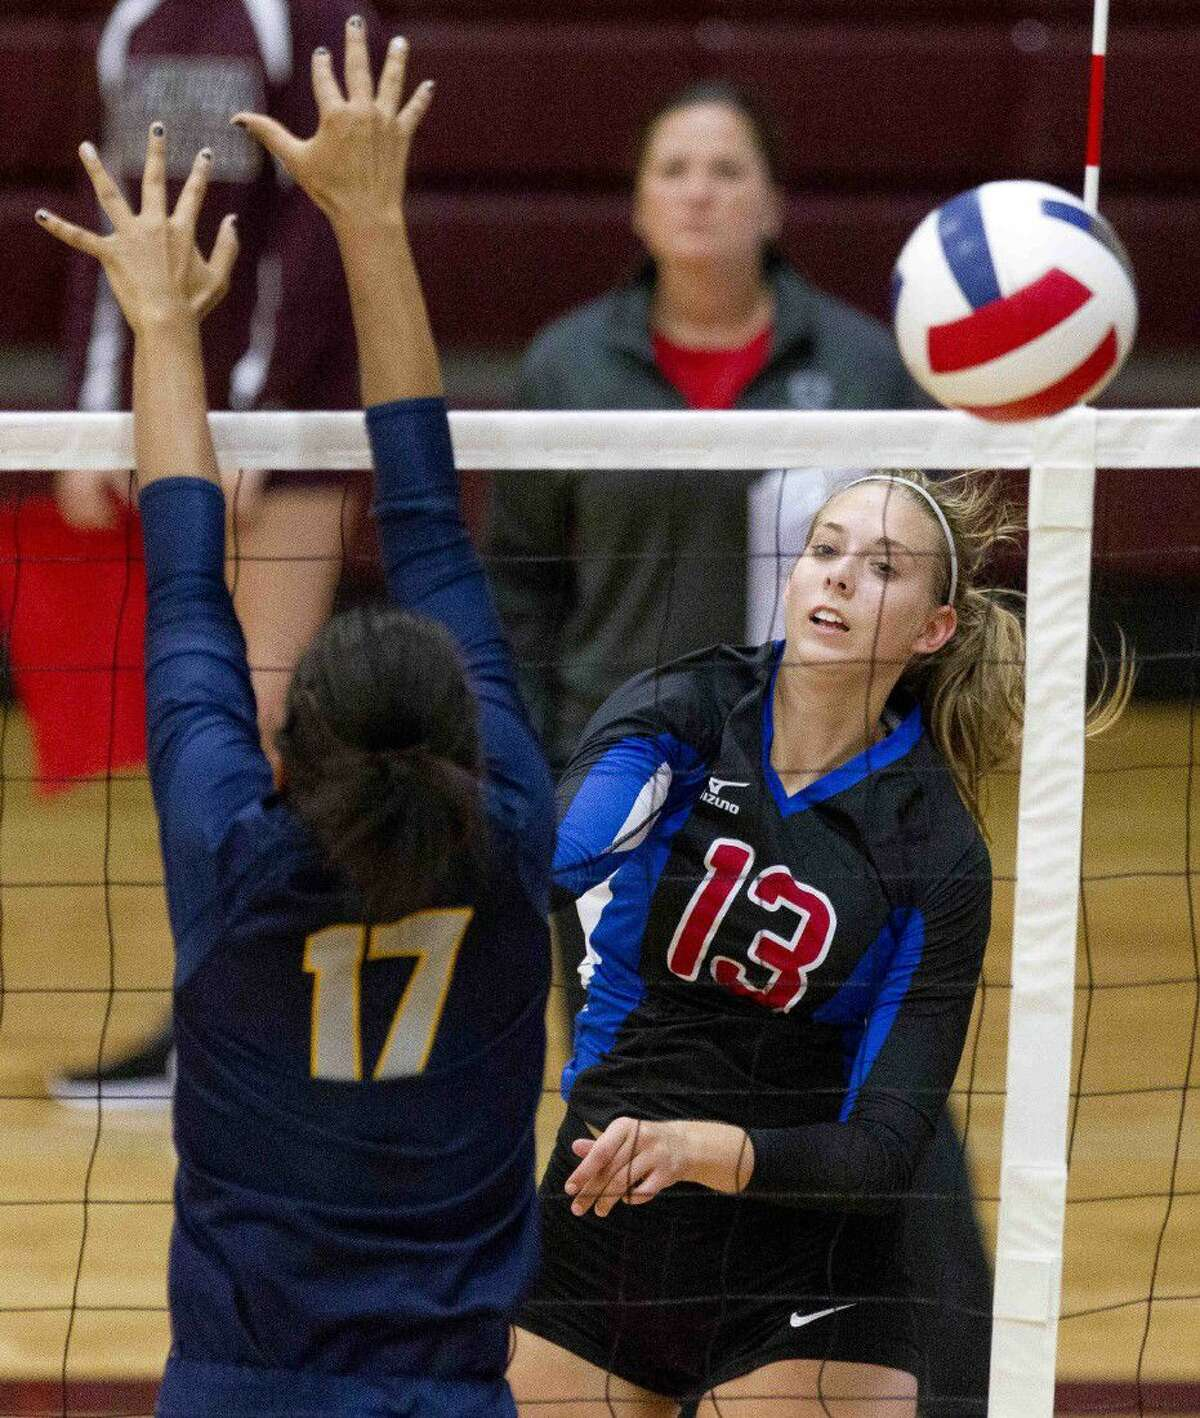 Oak Ridge's Brooke Clark gets a shot past Cypress Ranch blocker Kayla Benton during a match agaisnt Cypress Ranch at the Magnolia Volley-Battle tournament Friday at Magnolia High School. Go to HCNpics.com to purchase this photo and other like it.